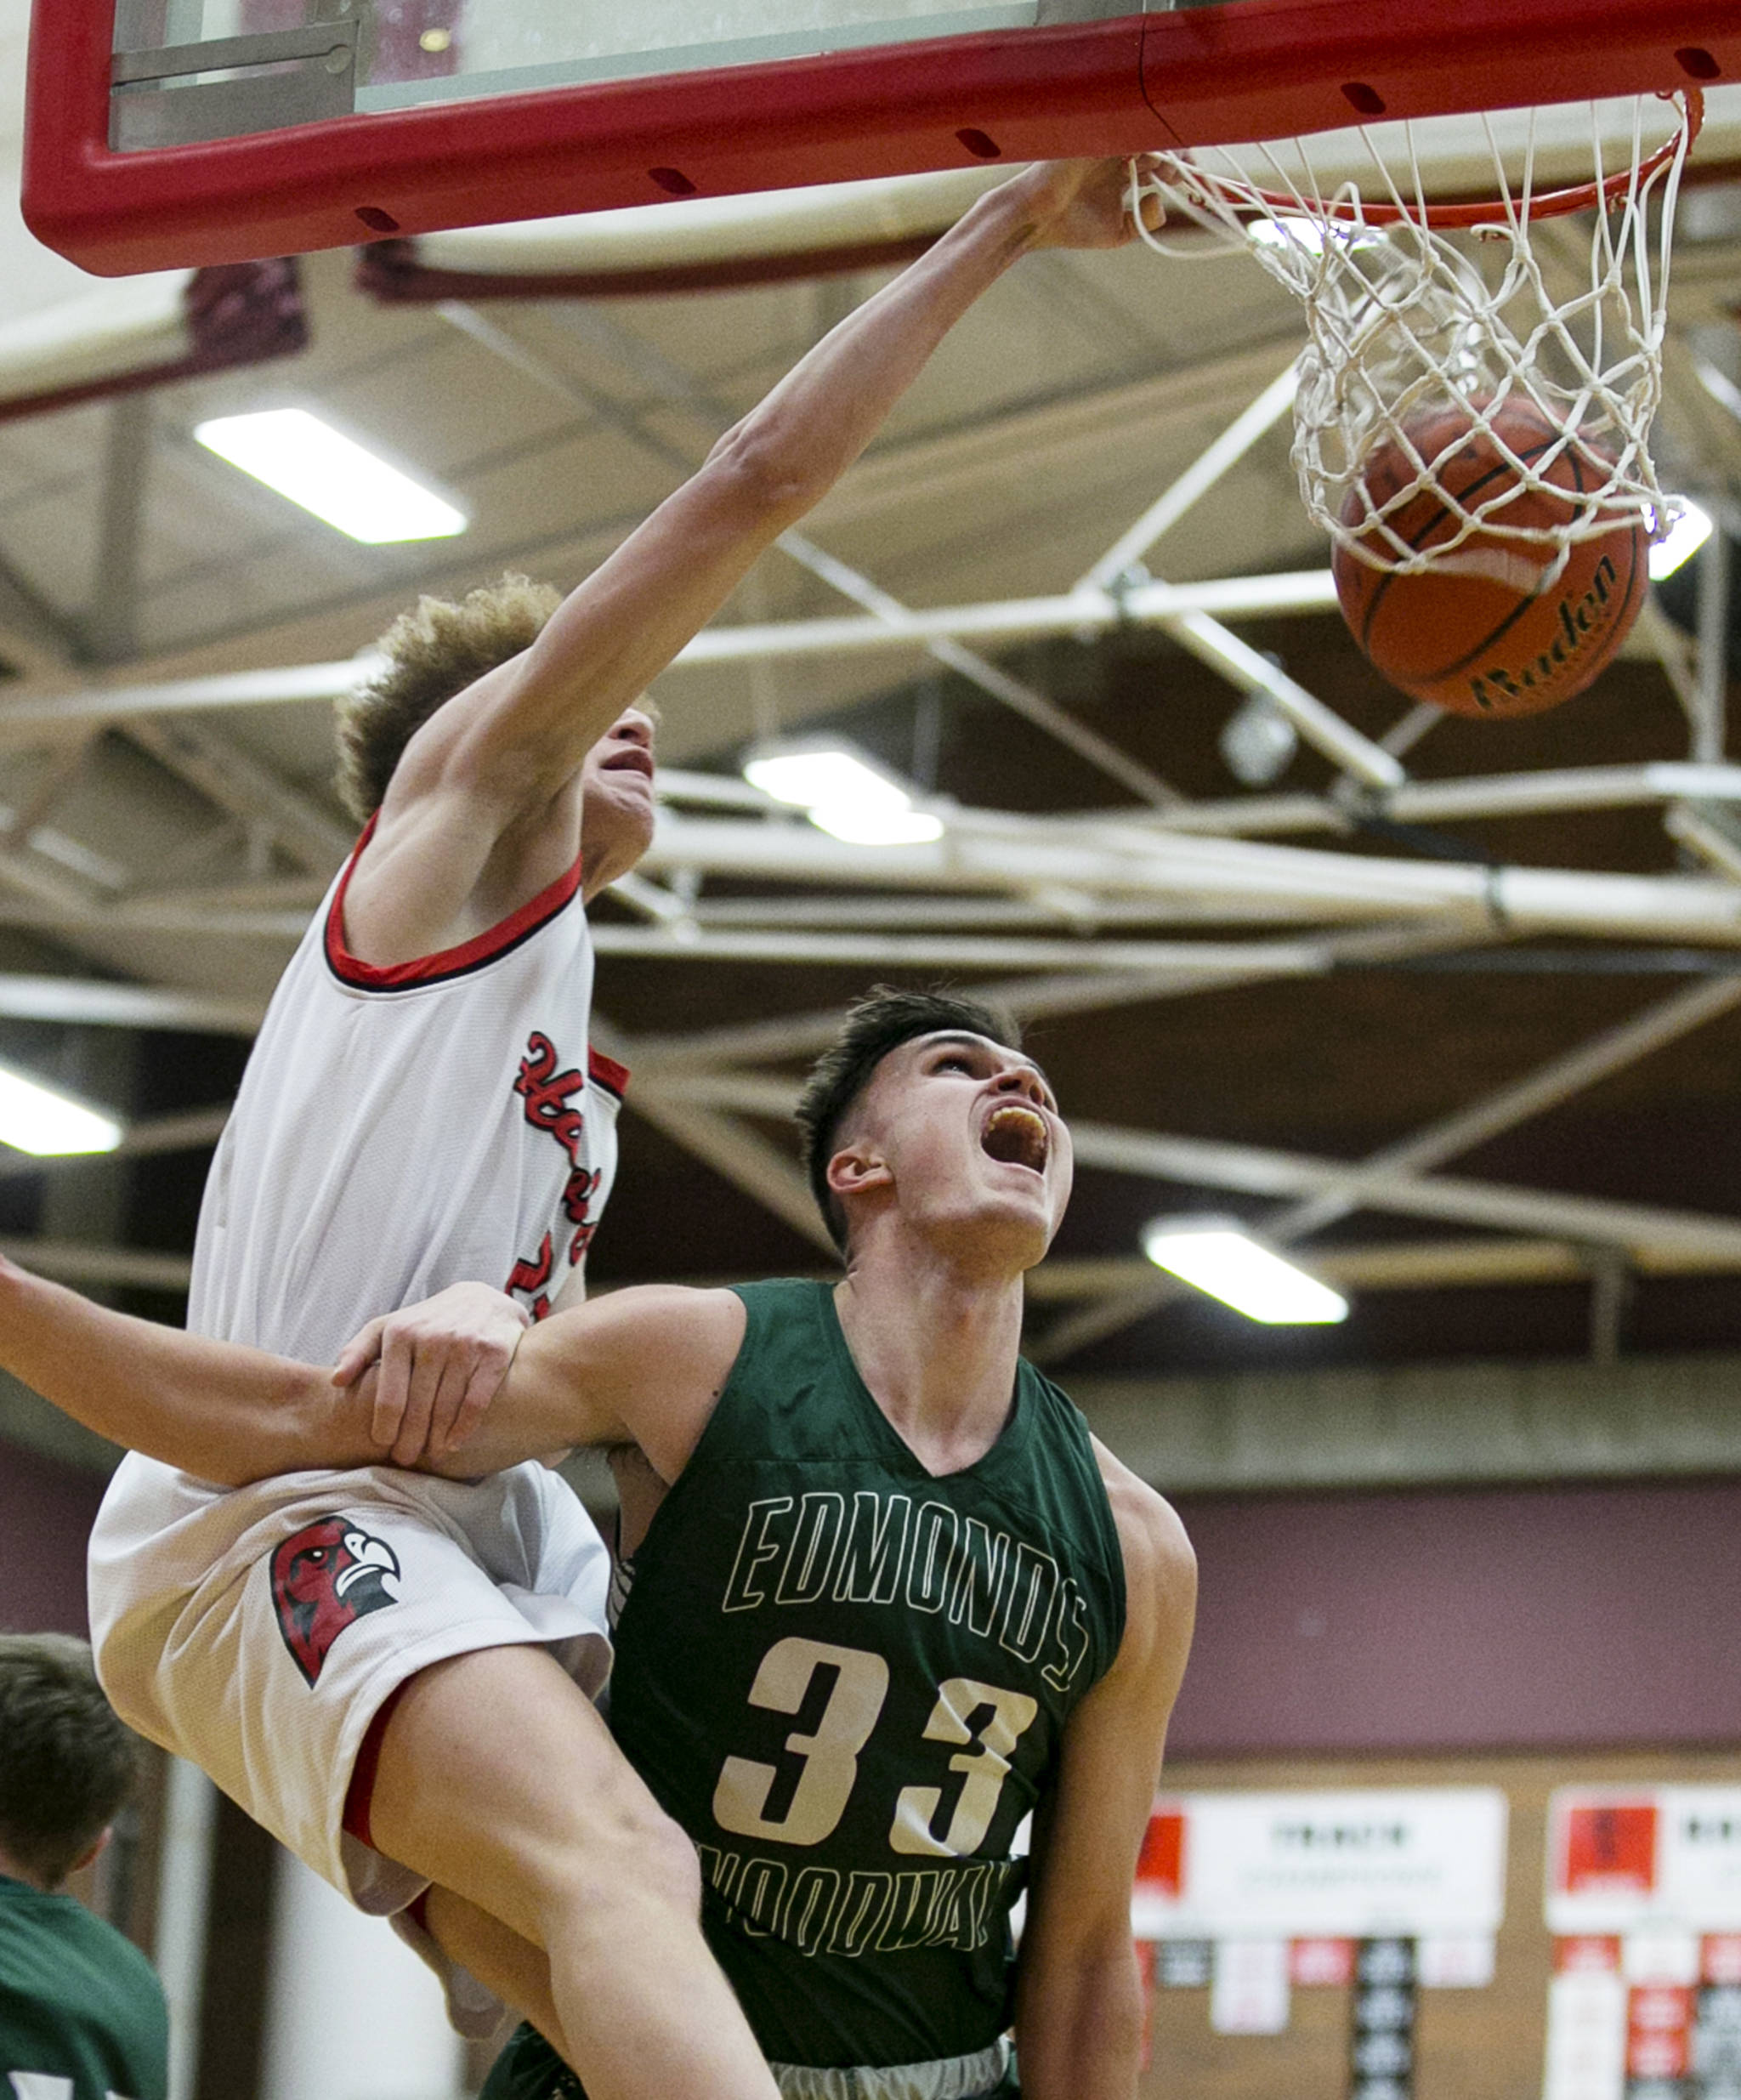 Mountlake Terrance's Khyree Armstead dunks and is fouled by Edmonds-Woodway's Kameron Eck at Mountlake Terrace High School on Jan. 23. (Kevin Clark / The Herald)